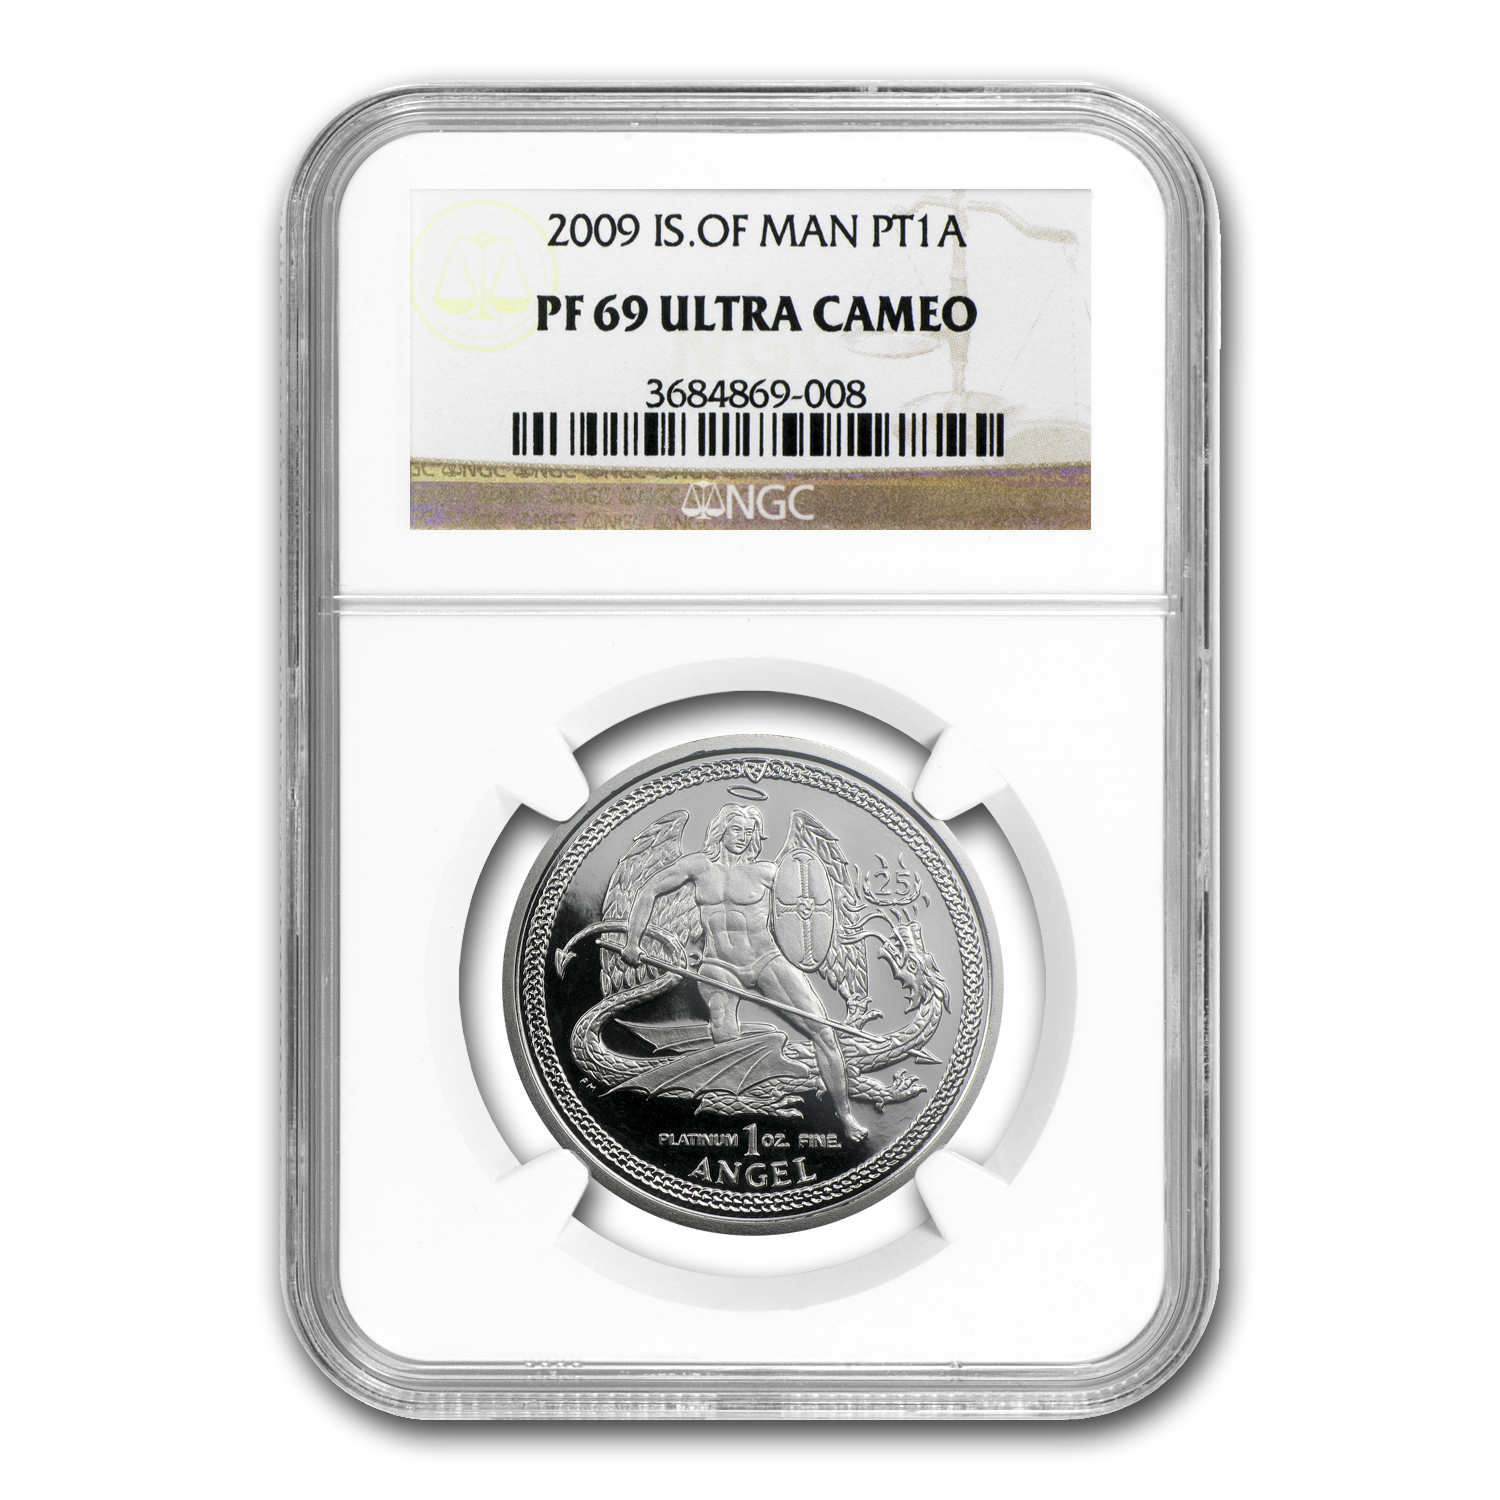 2009 1 oz Isle of Man Platinum Angel PF-69 NGC